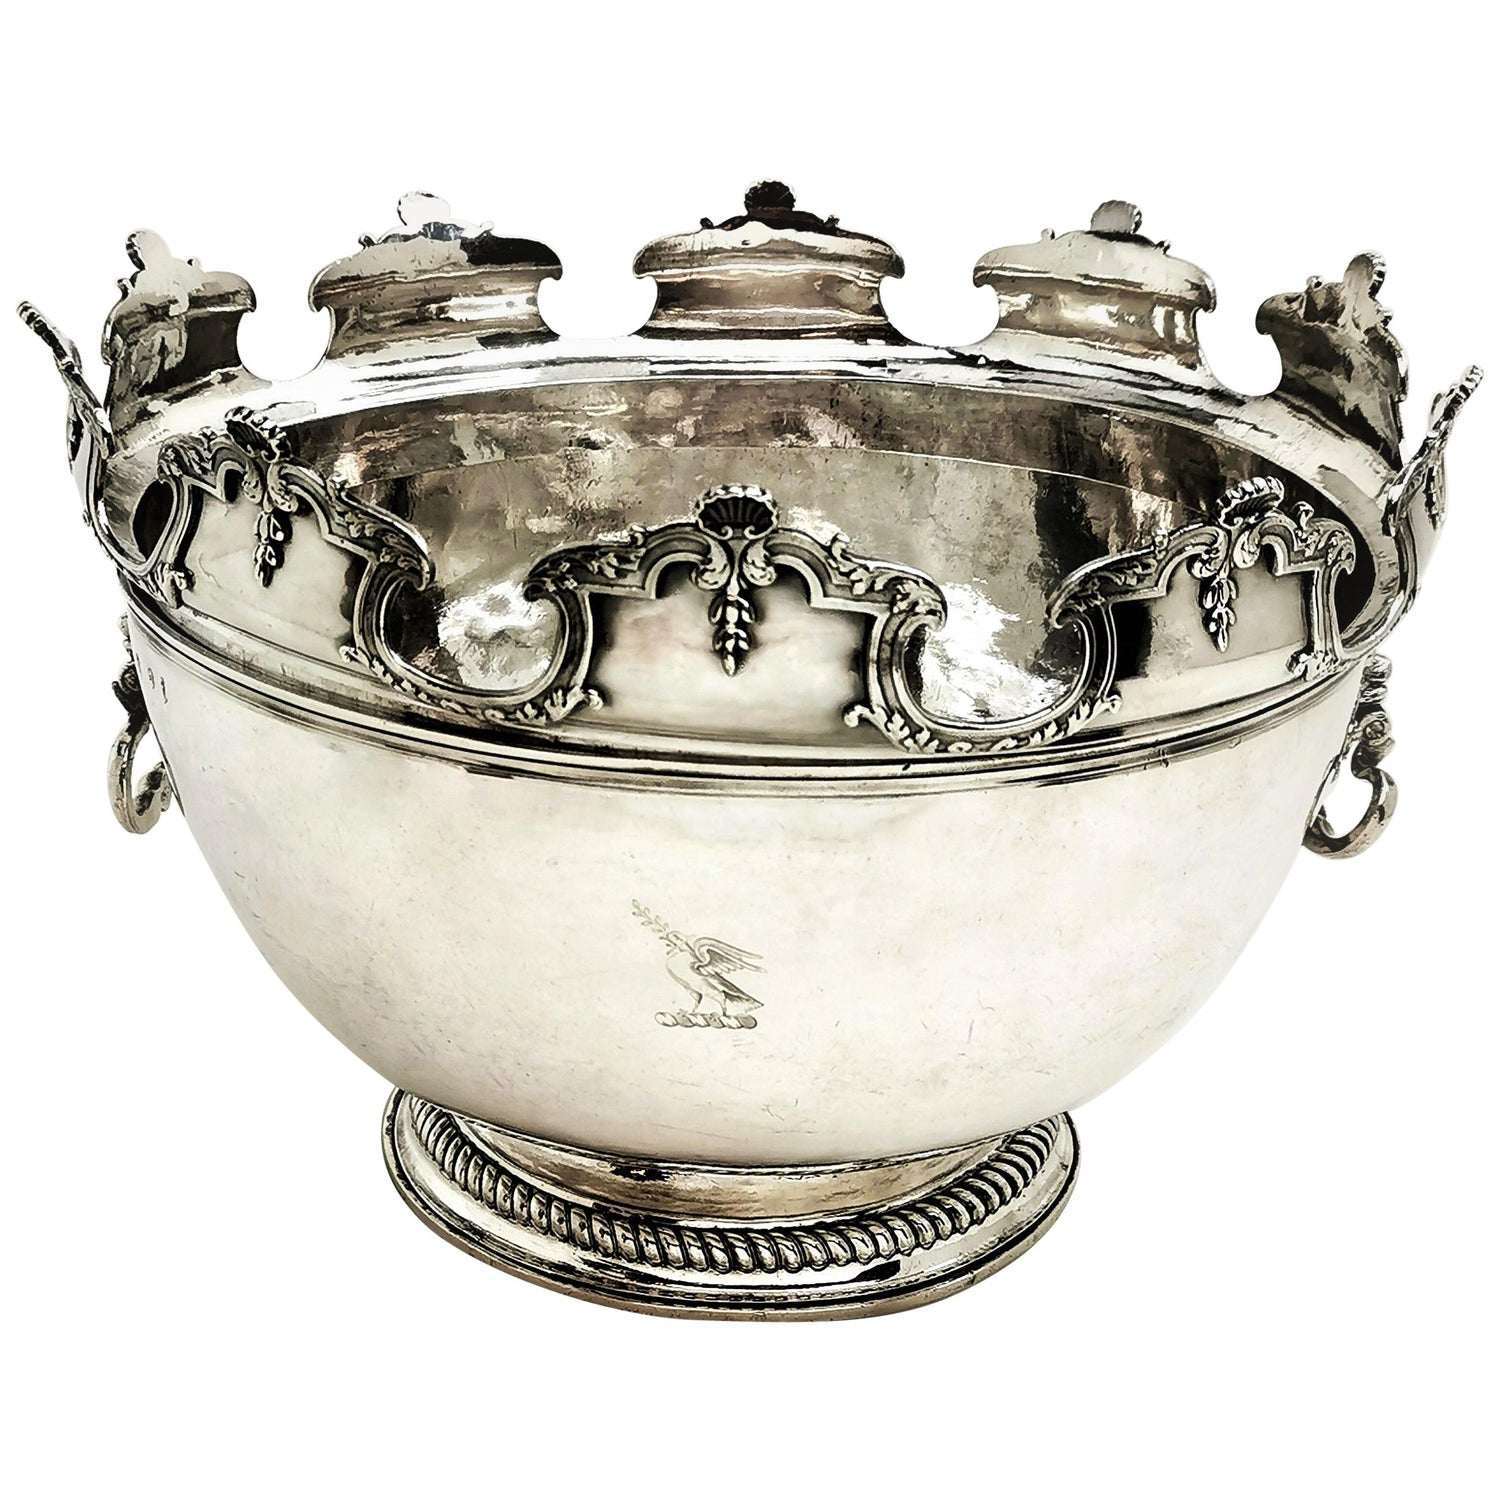 Antique William III Sterling Silver Punch Bowl / Large Bowl 1701